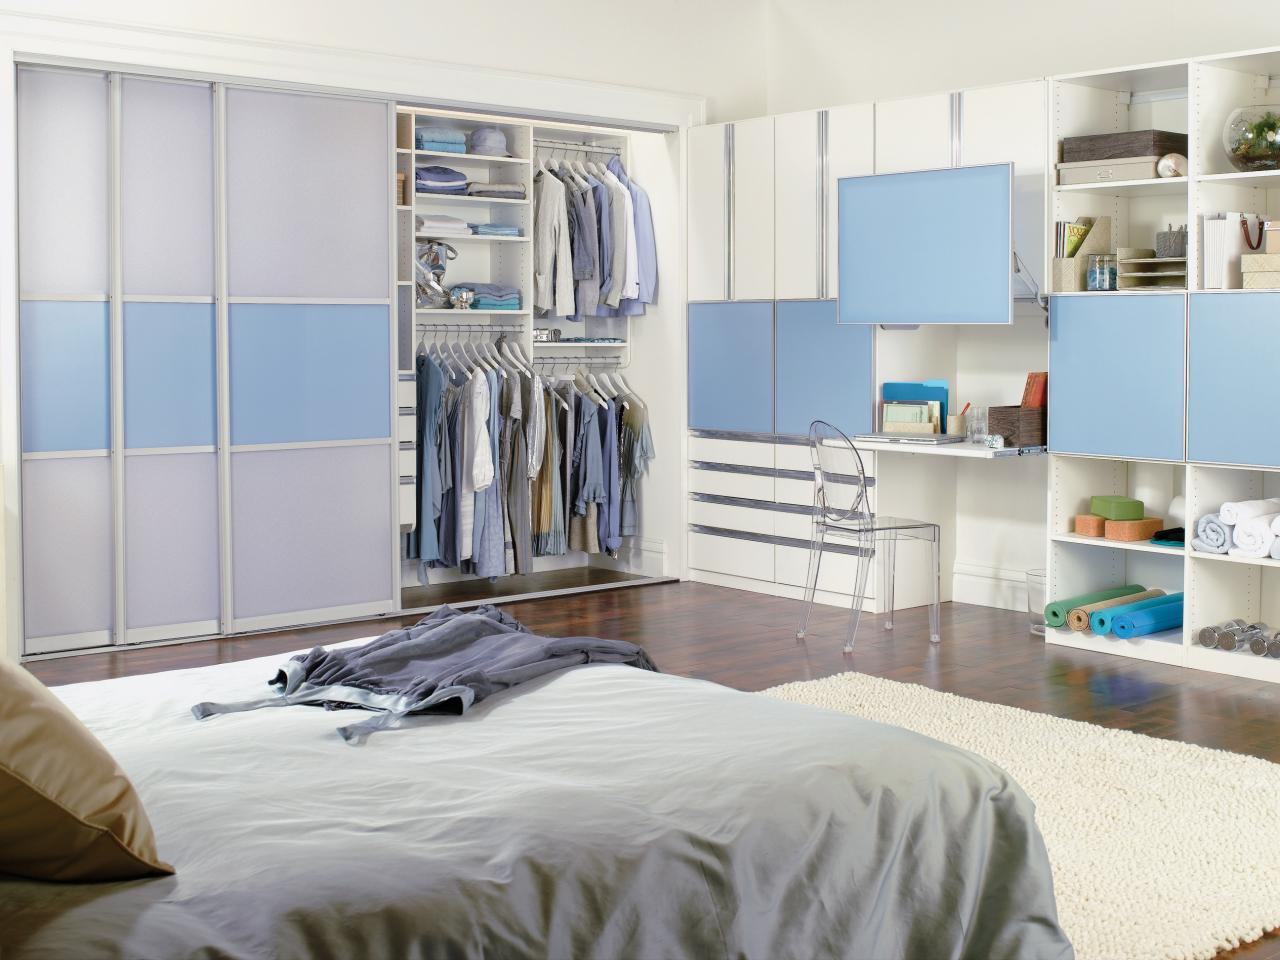 Closet Door Design Ideas And Options Pictures Tips More Hgtv